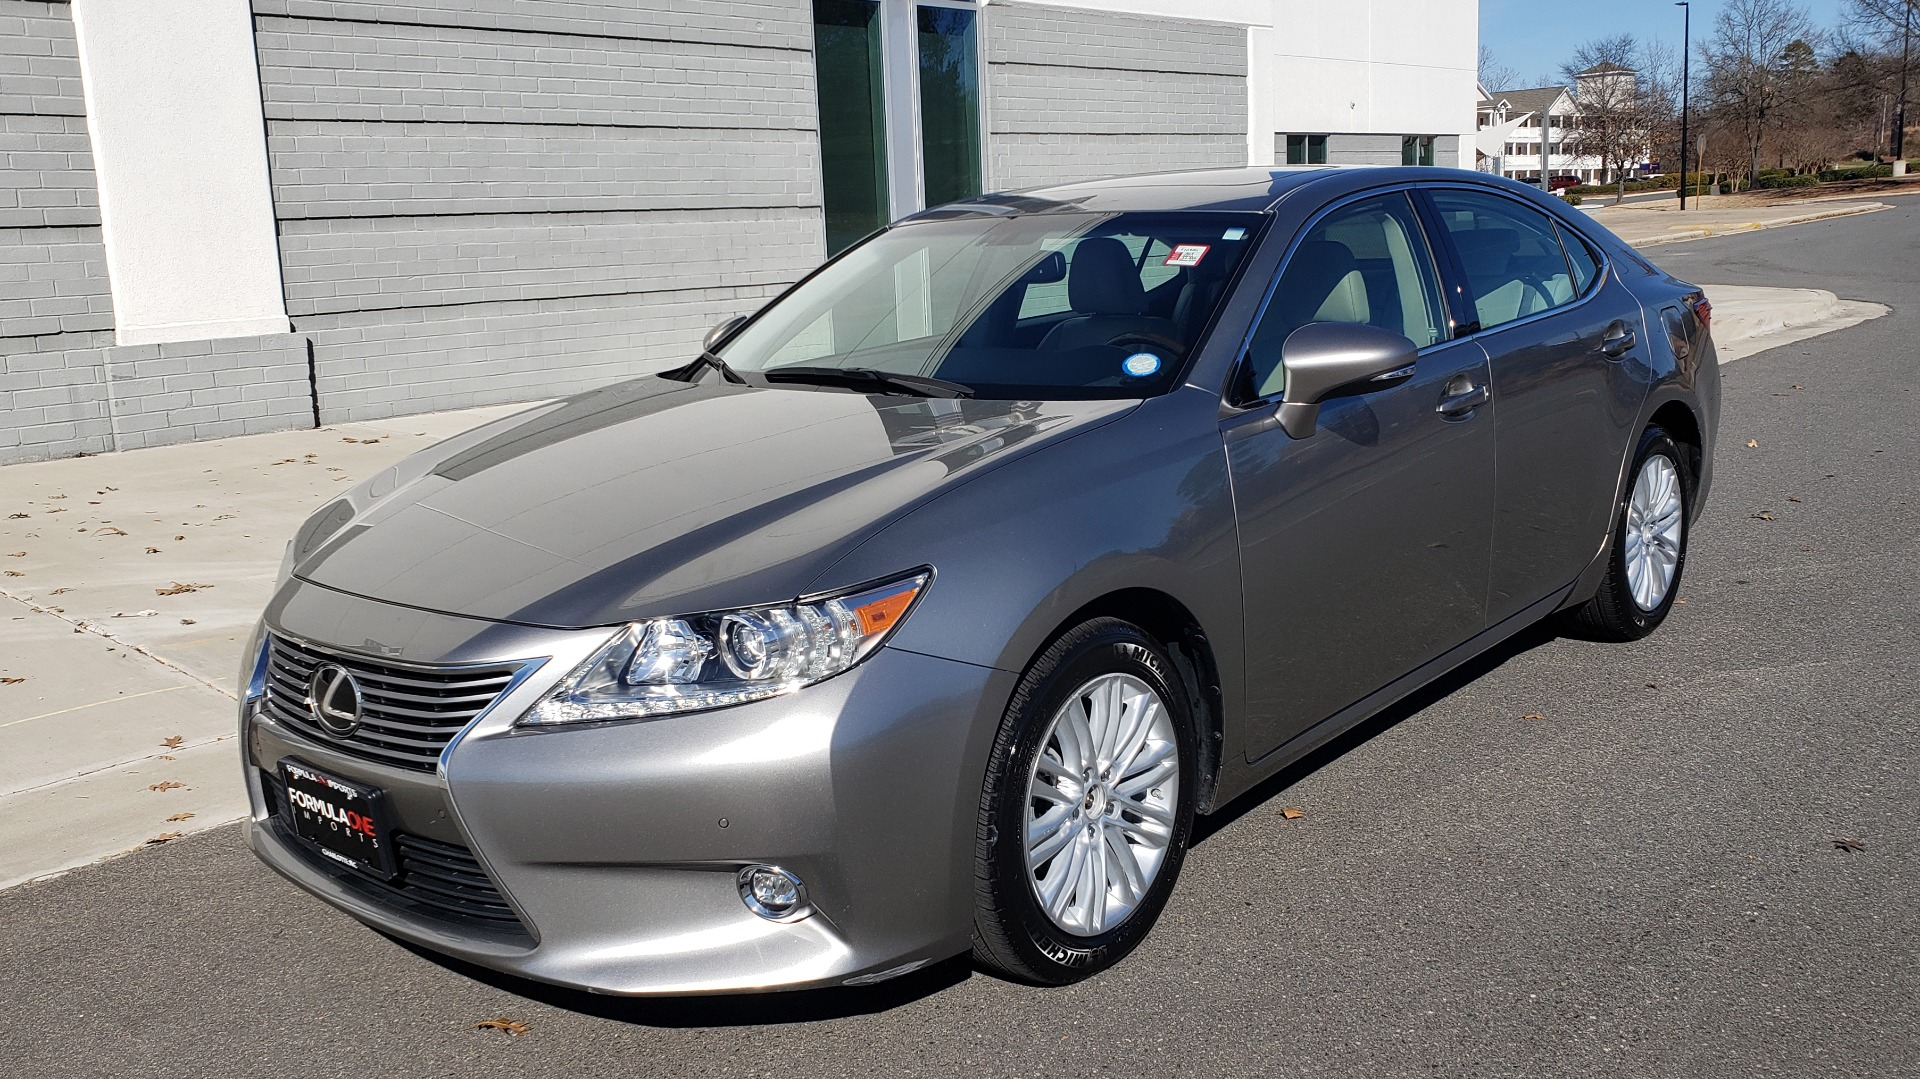 Used 2015 Lexus ES 350 LUXURY PKG / NAV / BSM / LCA / PARK ASSIST / REARVIEW for sale $21,995 at Formula Imports in Charlotte NC 28227 1